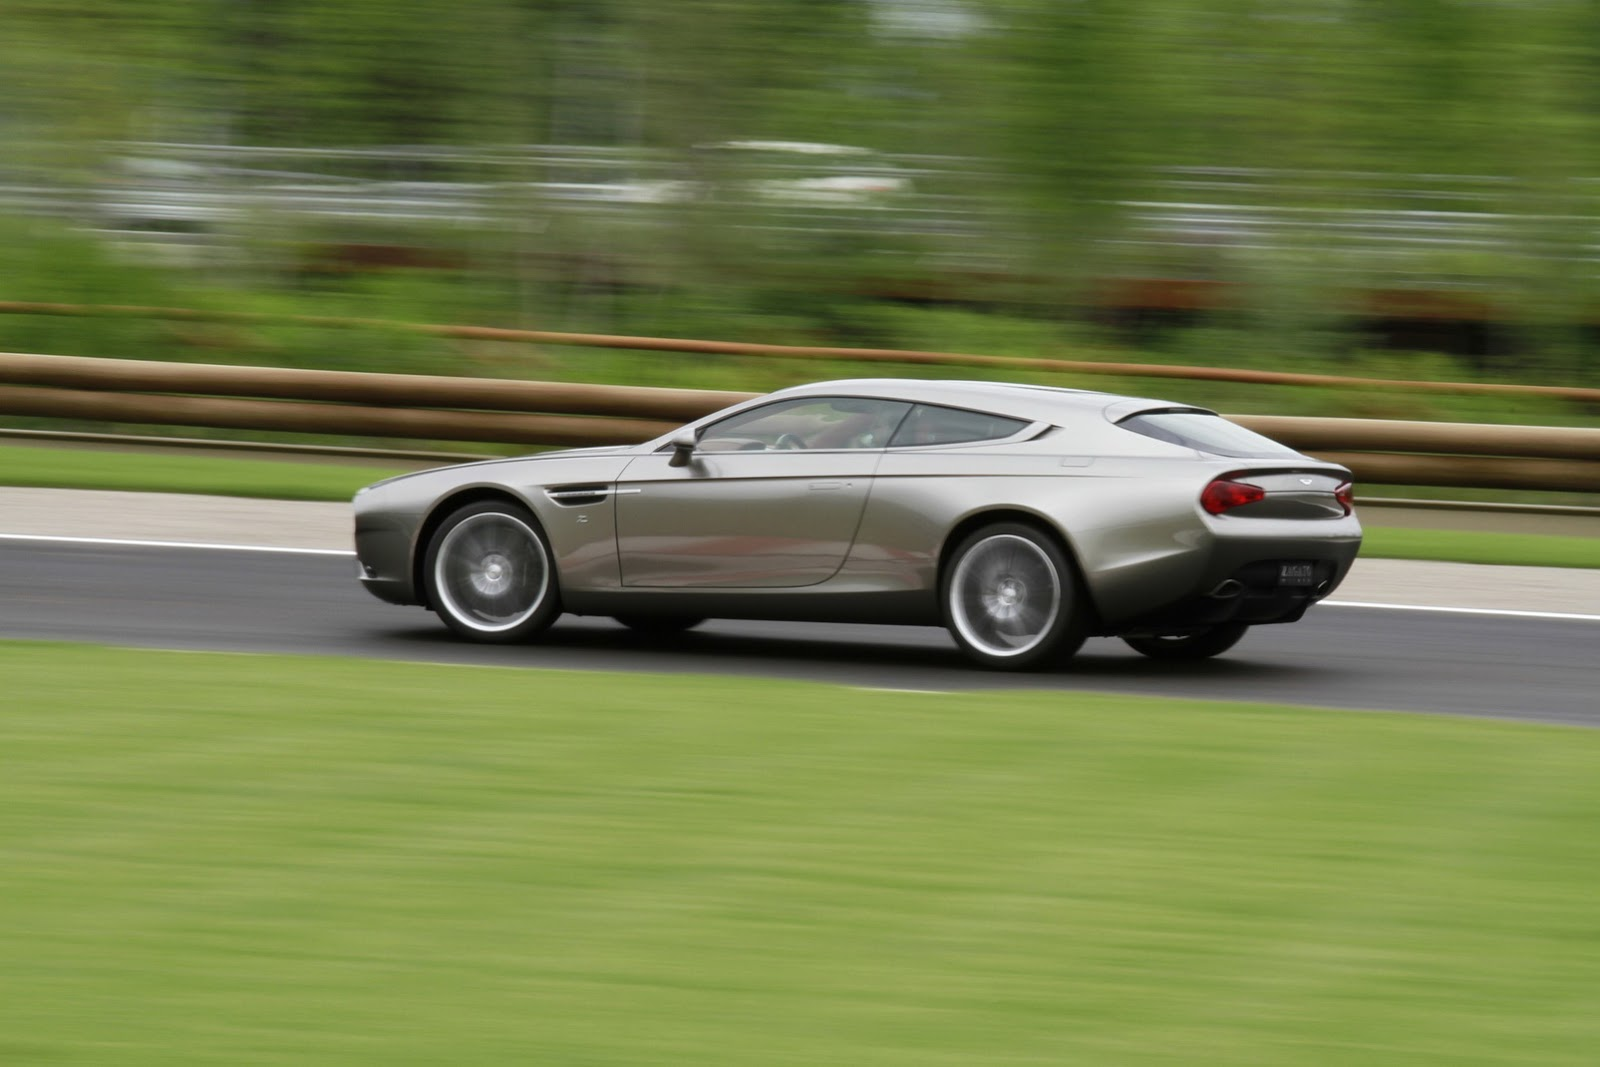 2017 Aston Martin V12 Zagato Concept photo - 2